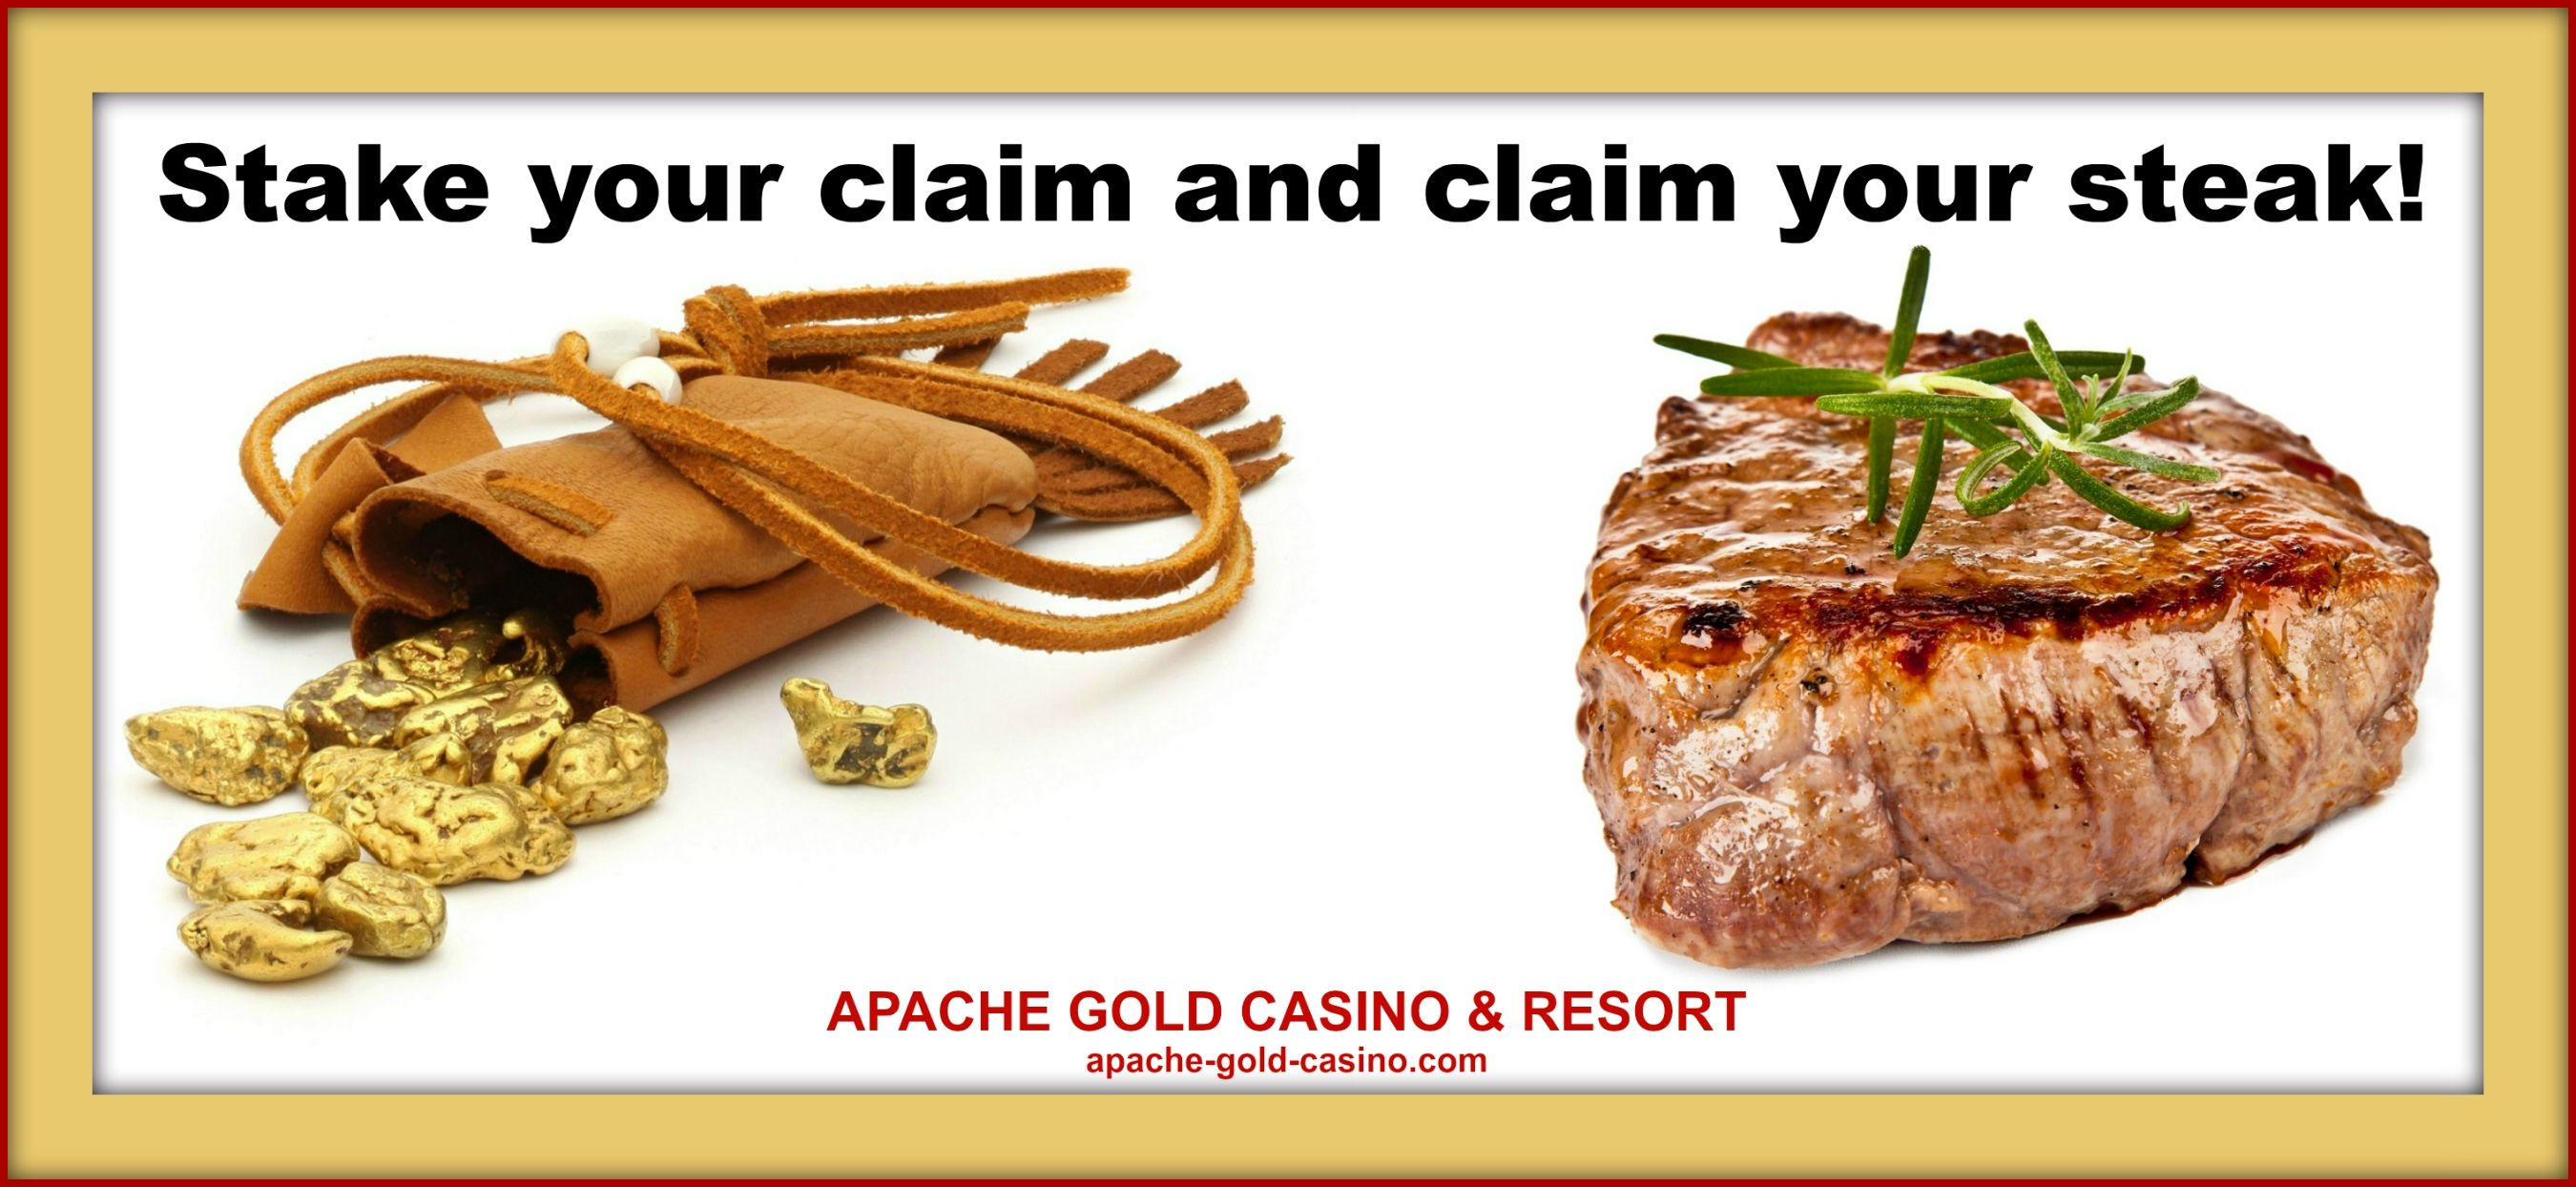 Ad for Apache Prime Steakhouse, located in the casino resort complex.